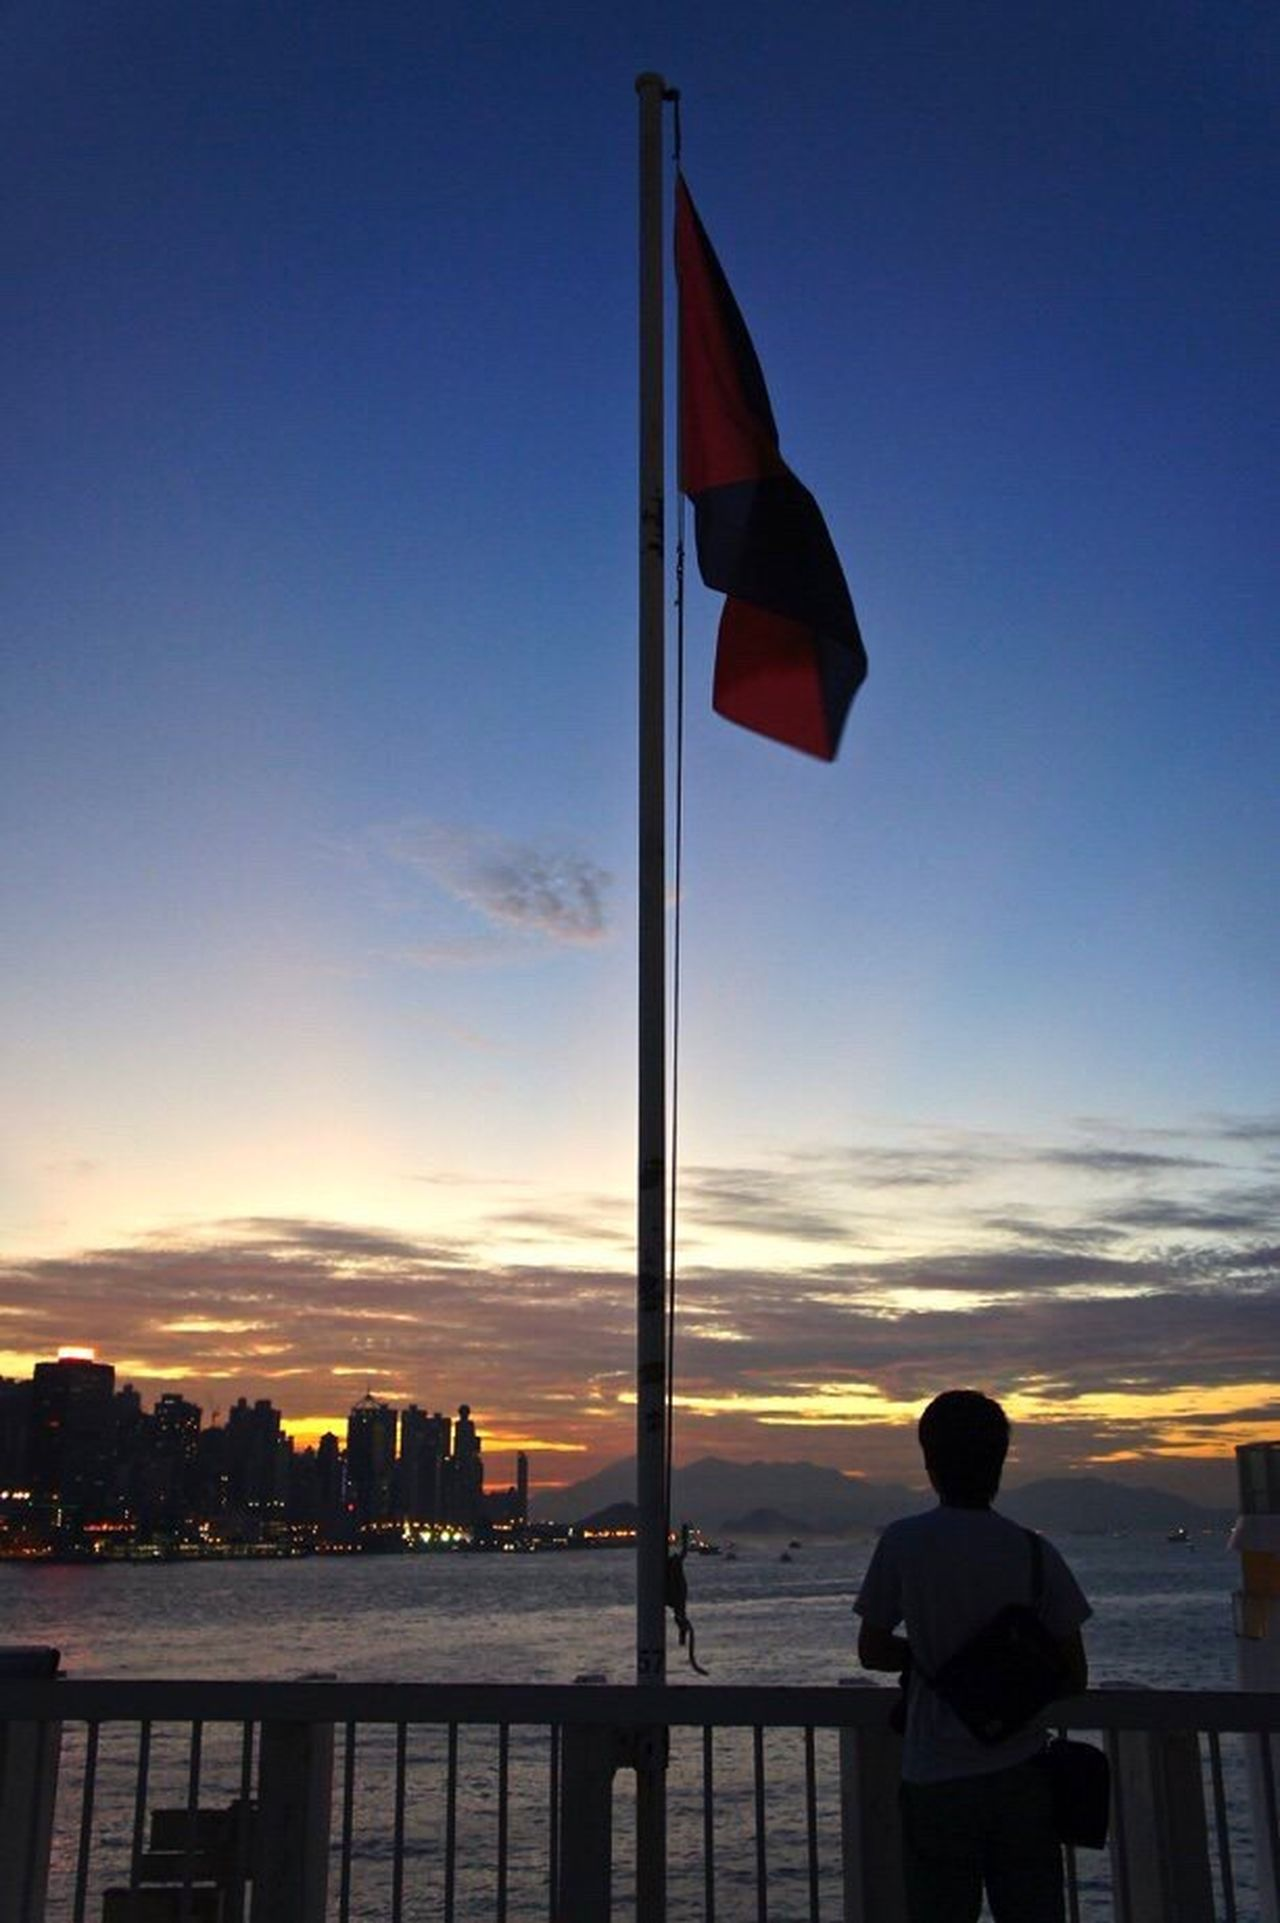 Magic Hour Victoria Harbour HongKong Wanderlust Wandering Around Aimlessly Flag Sunset Sunset Silhouettes The Sun Is Setting Sunset_collection Hong Kong Victoria Harbour ASIA Sky_collection